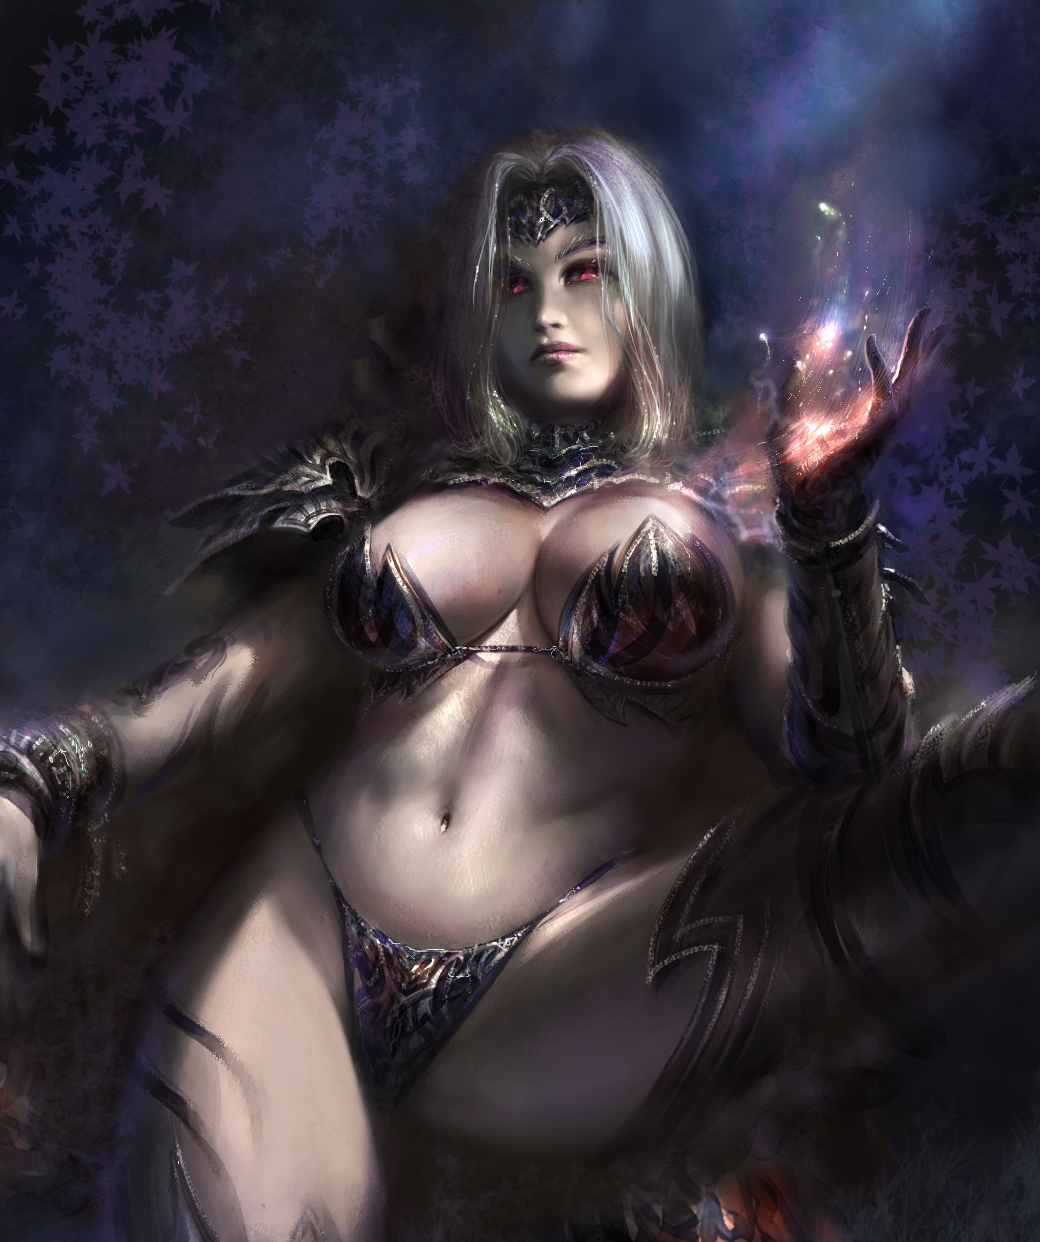 Dark elf pin-up 3d pornos images